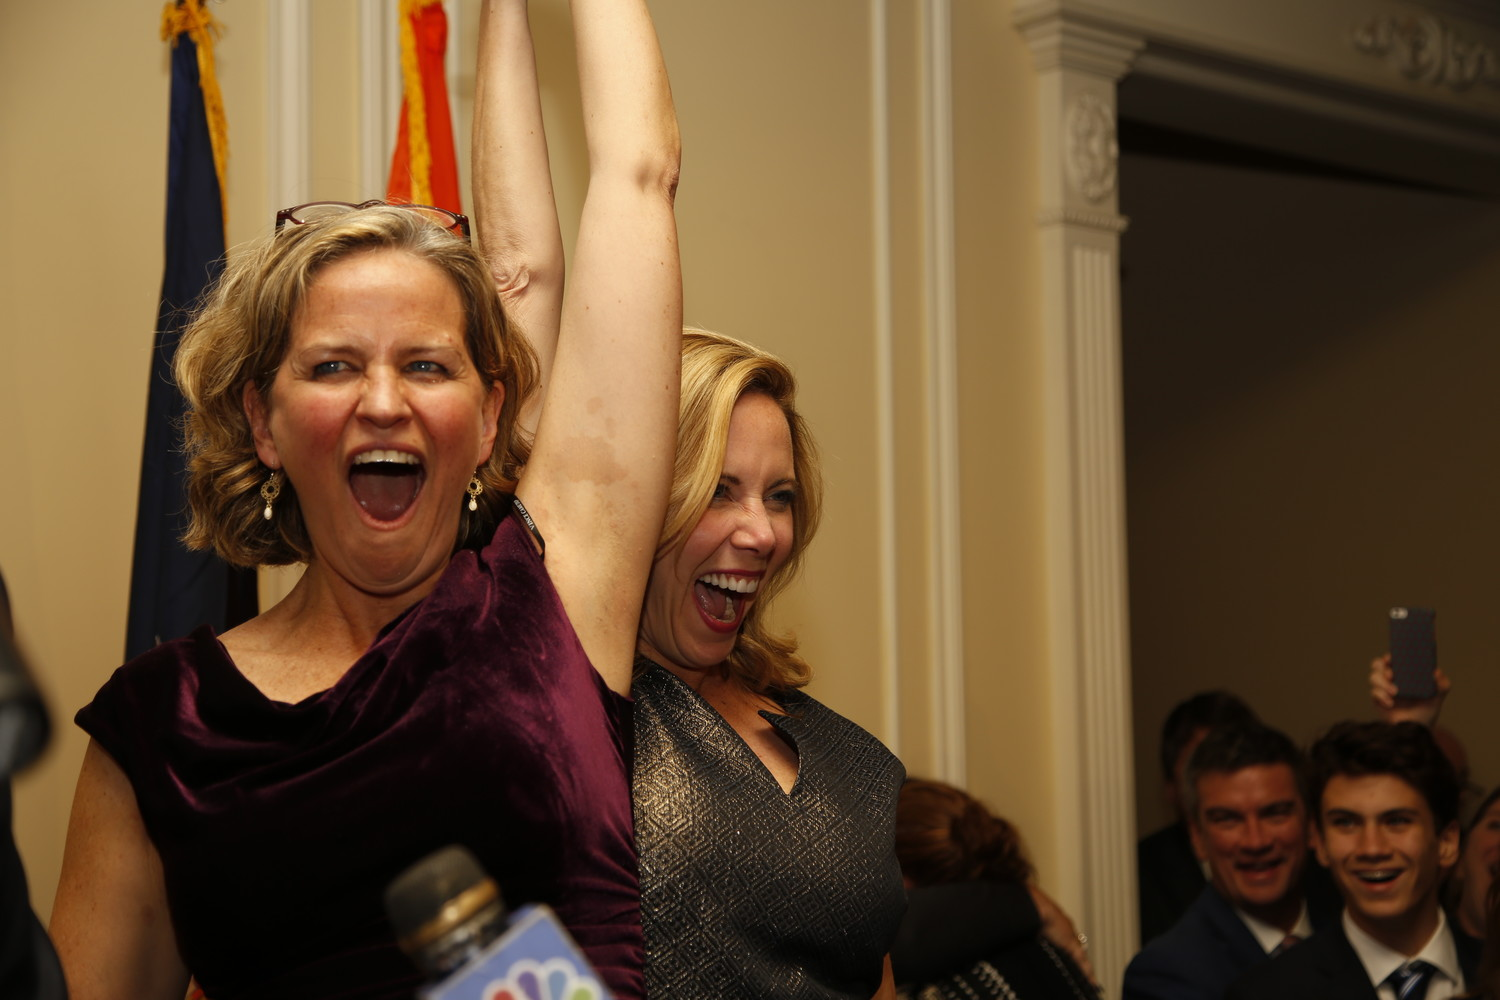 Freelancer Sue Grieco earned third place for Spot News Photo for this one of County Executive-elect Laura Curran, left, and Town of Hempstead Supervisor-elect Laura Gillen celebrating victory on Election Day last November.